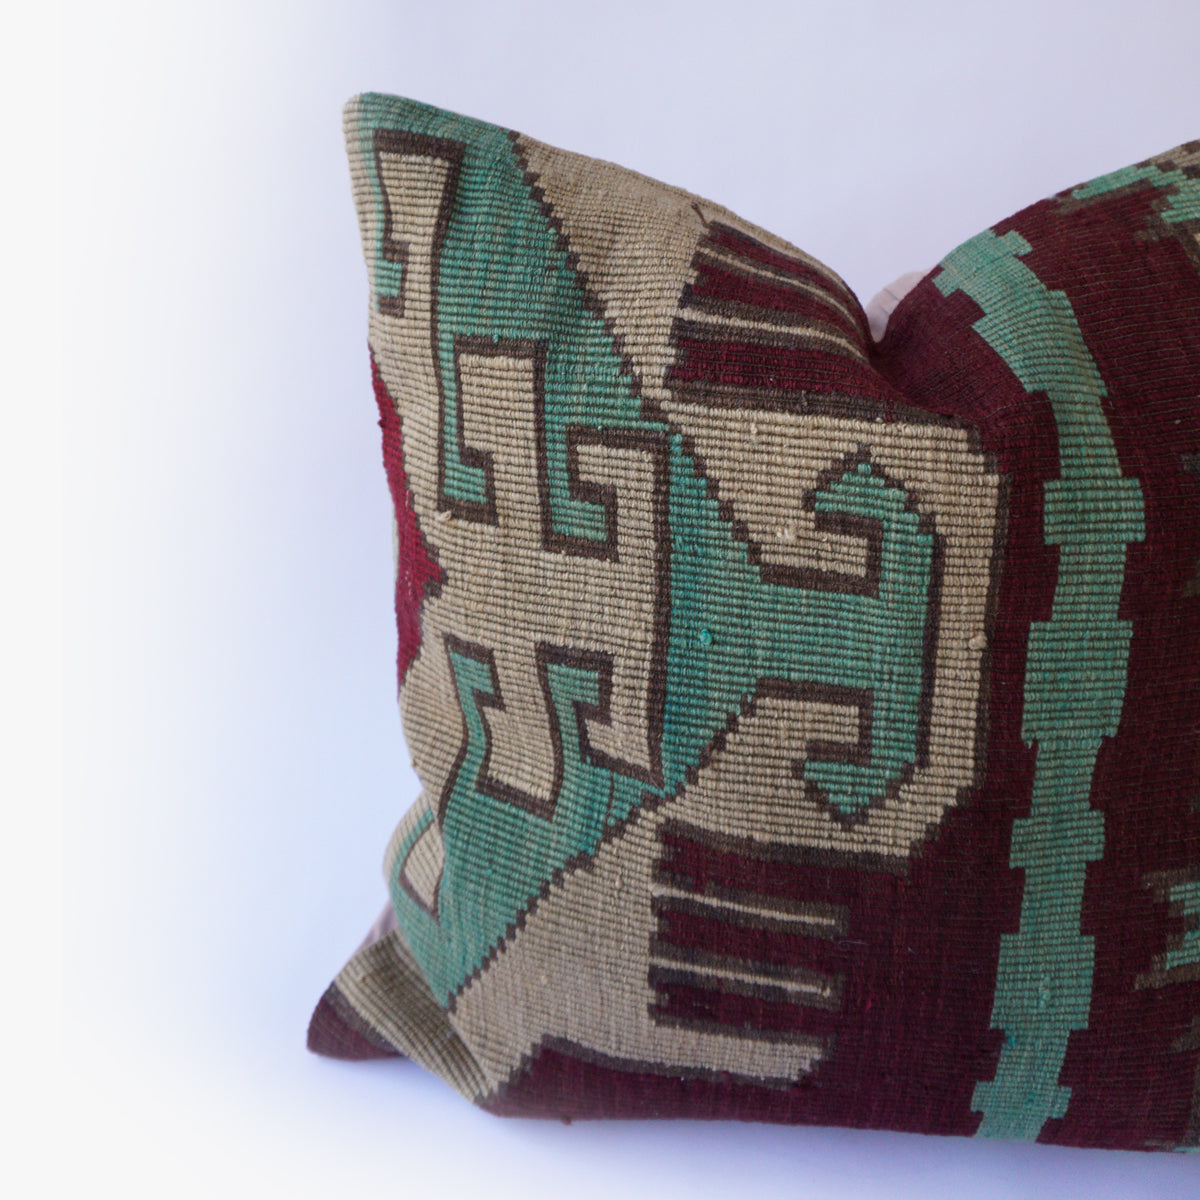 24x24 Kilim pillowcase made from recycled handwoven vintage Turkish kilims.  Zipper closure. Insert not included. Natural dyes. Wool. One of a kind.   Colors include tan, green, maroon and pink.